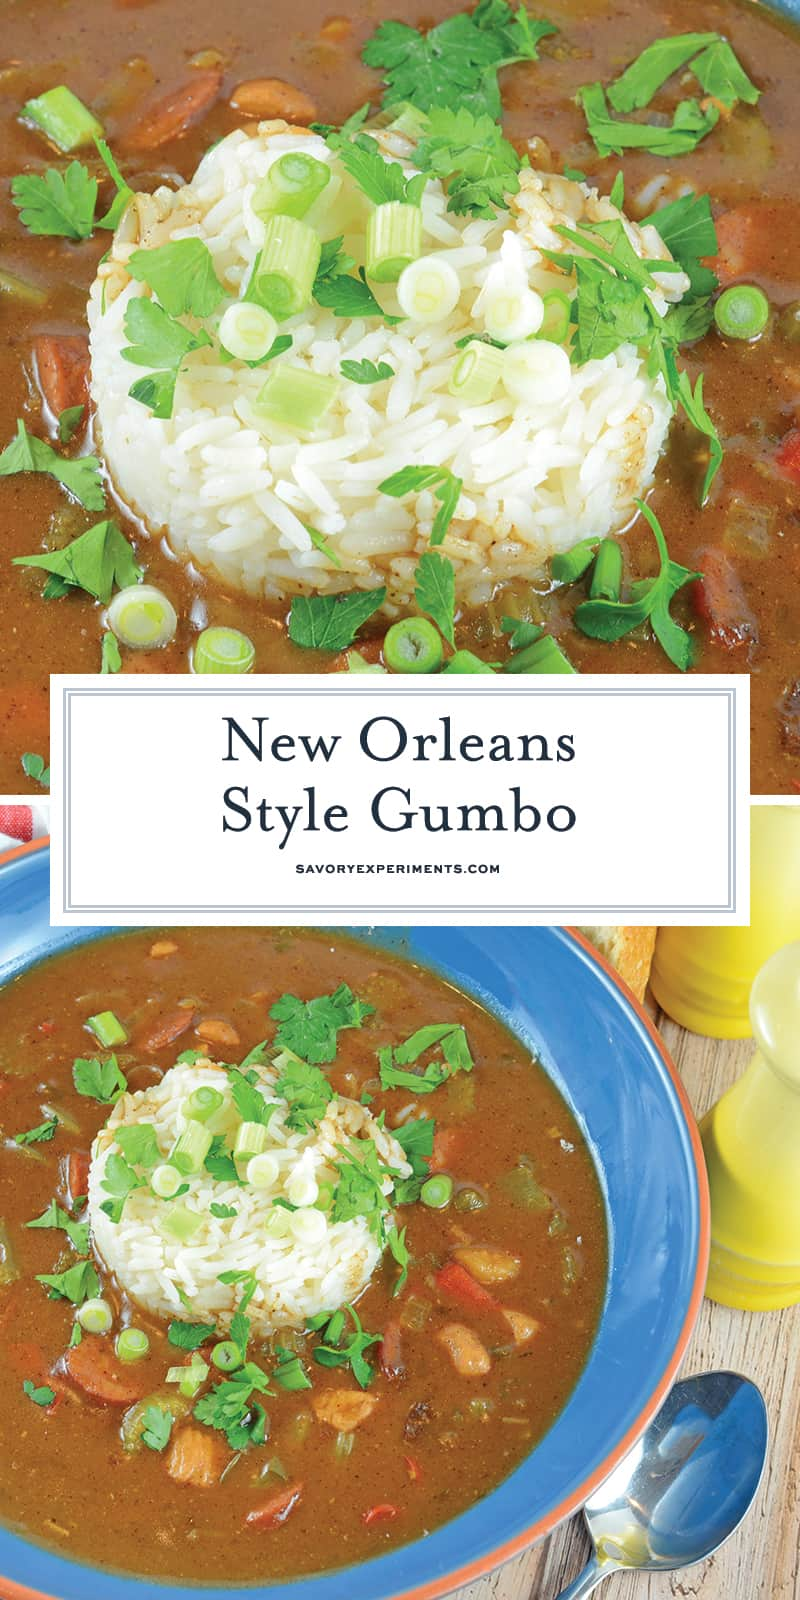 Authentic New Orleans Gumbo is a rich & hearty sauce mixed with vegetables, Andouille sausage, chicken & even seafood! Serve on rice for a perfect Creole meal! #gumborecipe #seafoodgumbo www.savoryexperiments.com